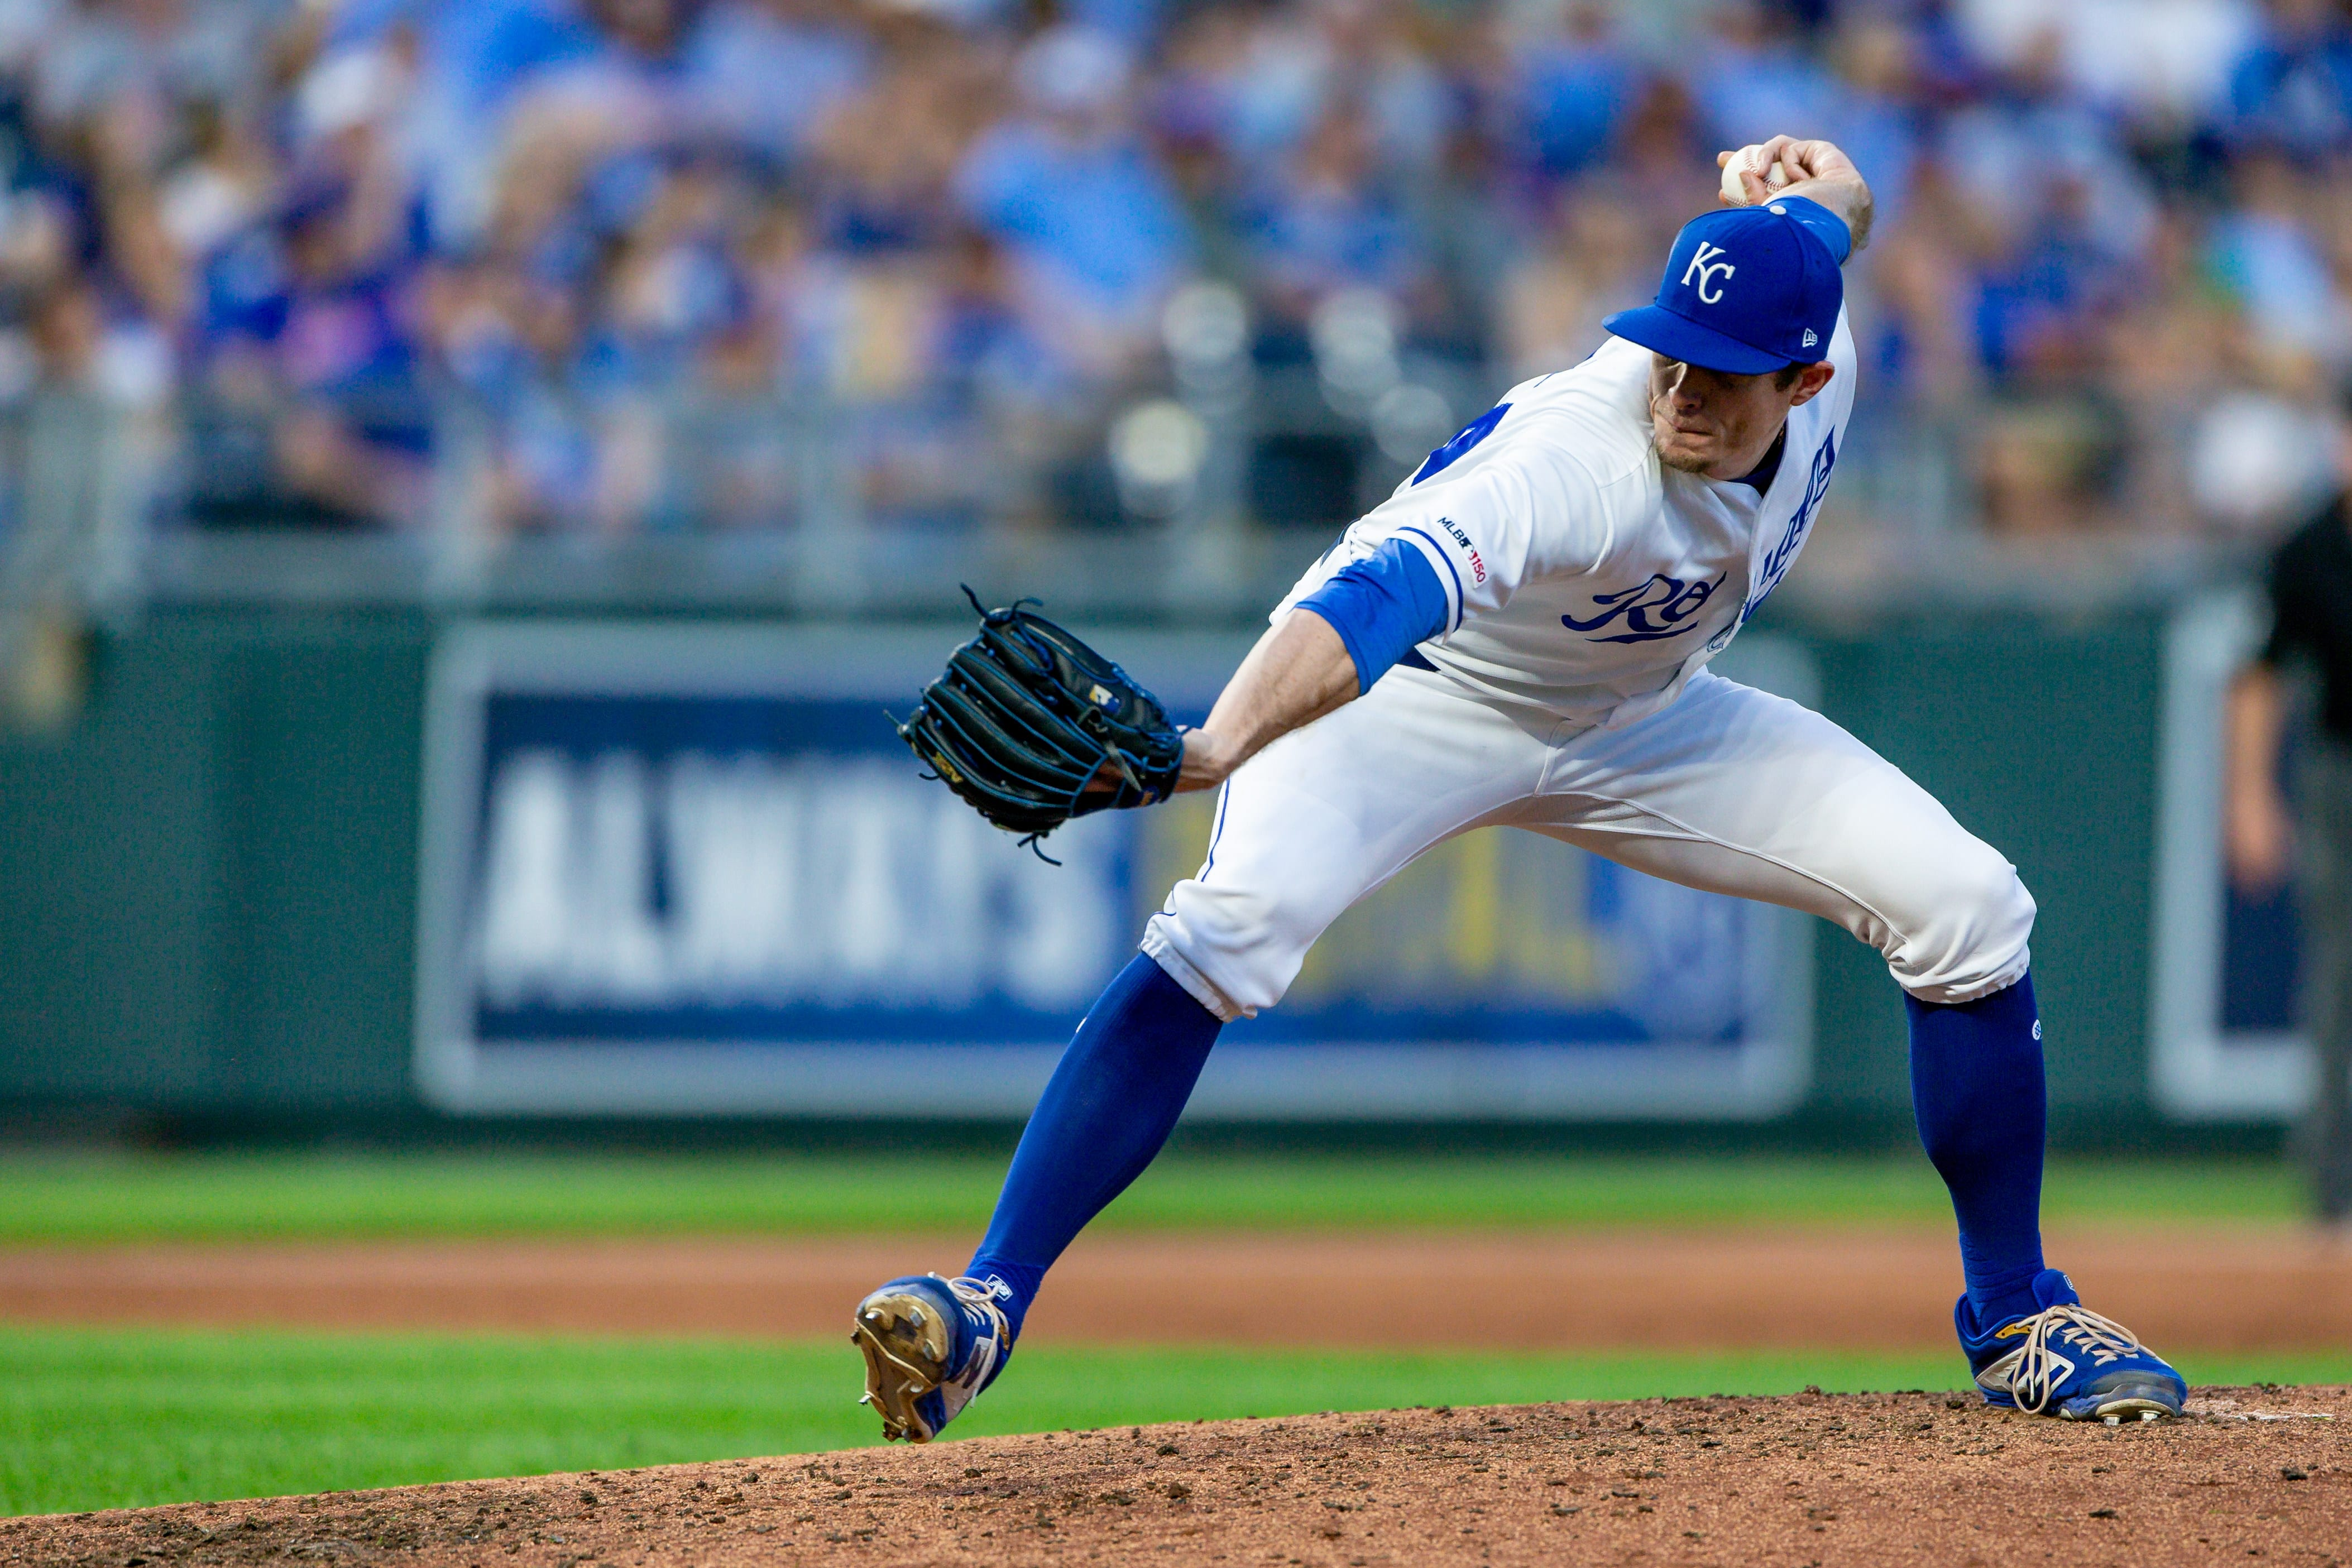 New York Yankees have potential interest in Royals pitcher, Tim Hill.